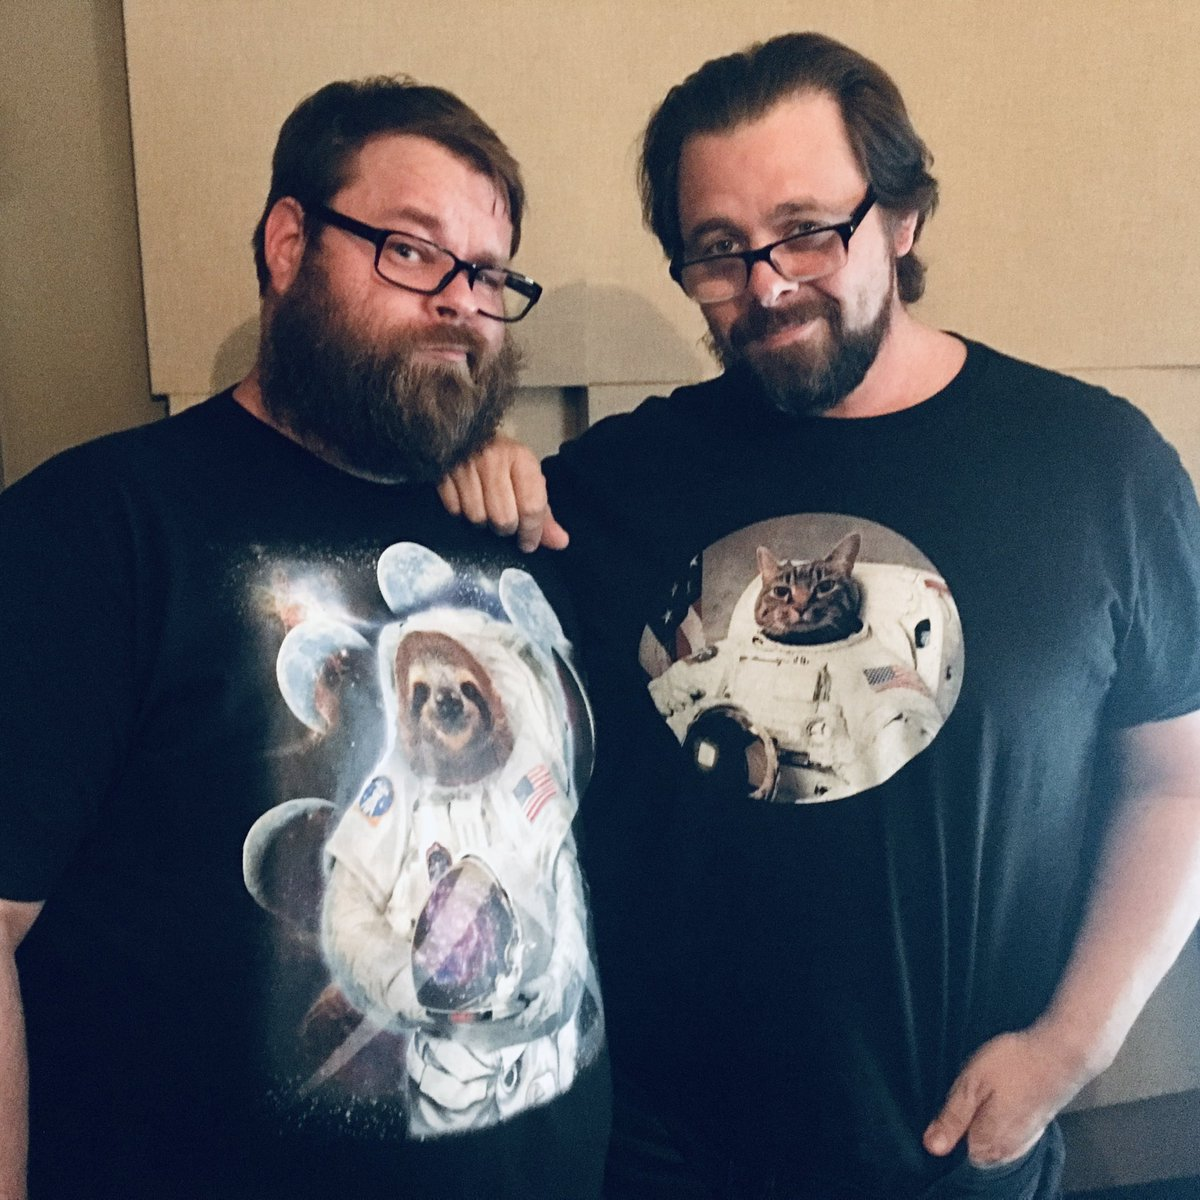 I'll use my rare Twitter day to wish one of my dear friends a happy birthday. We may talk massive amounts of shit to each other, but I promise it's purely out of love. I gave you #Inmanime, your most prized hashtag, and once head butted you to the floor. Happy birthday big guy.